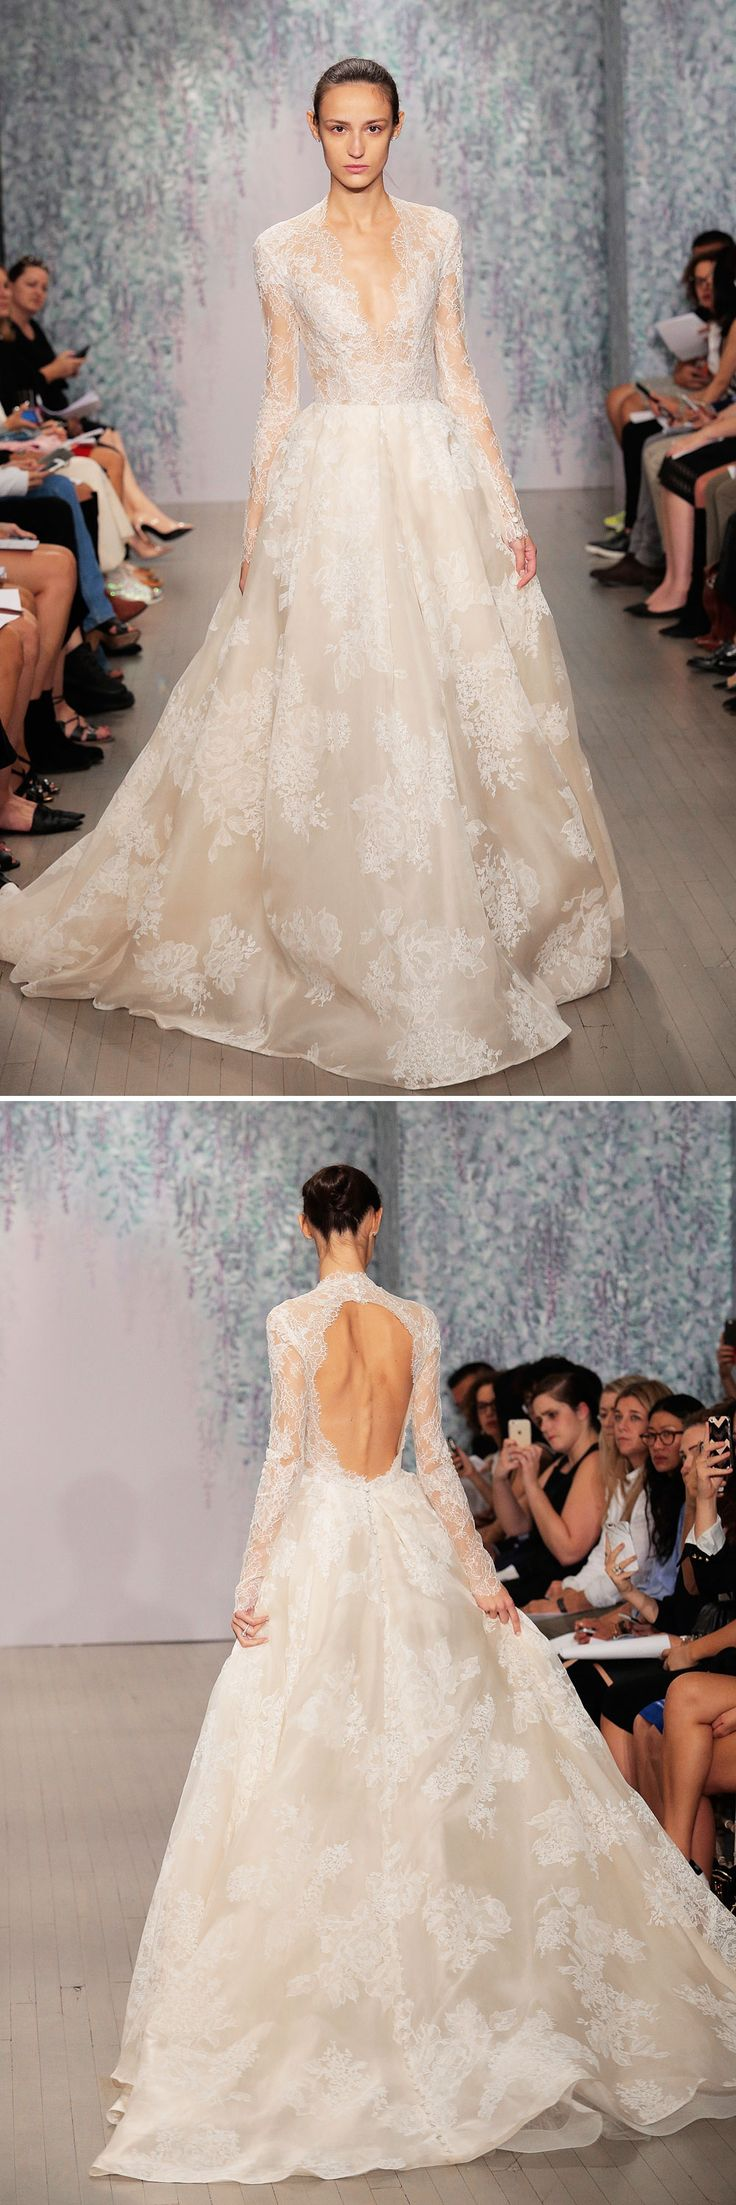 15 Wedding Gowns That Are Even More Gorgeous From the Back